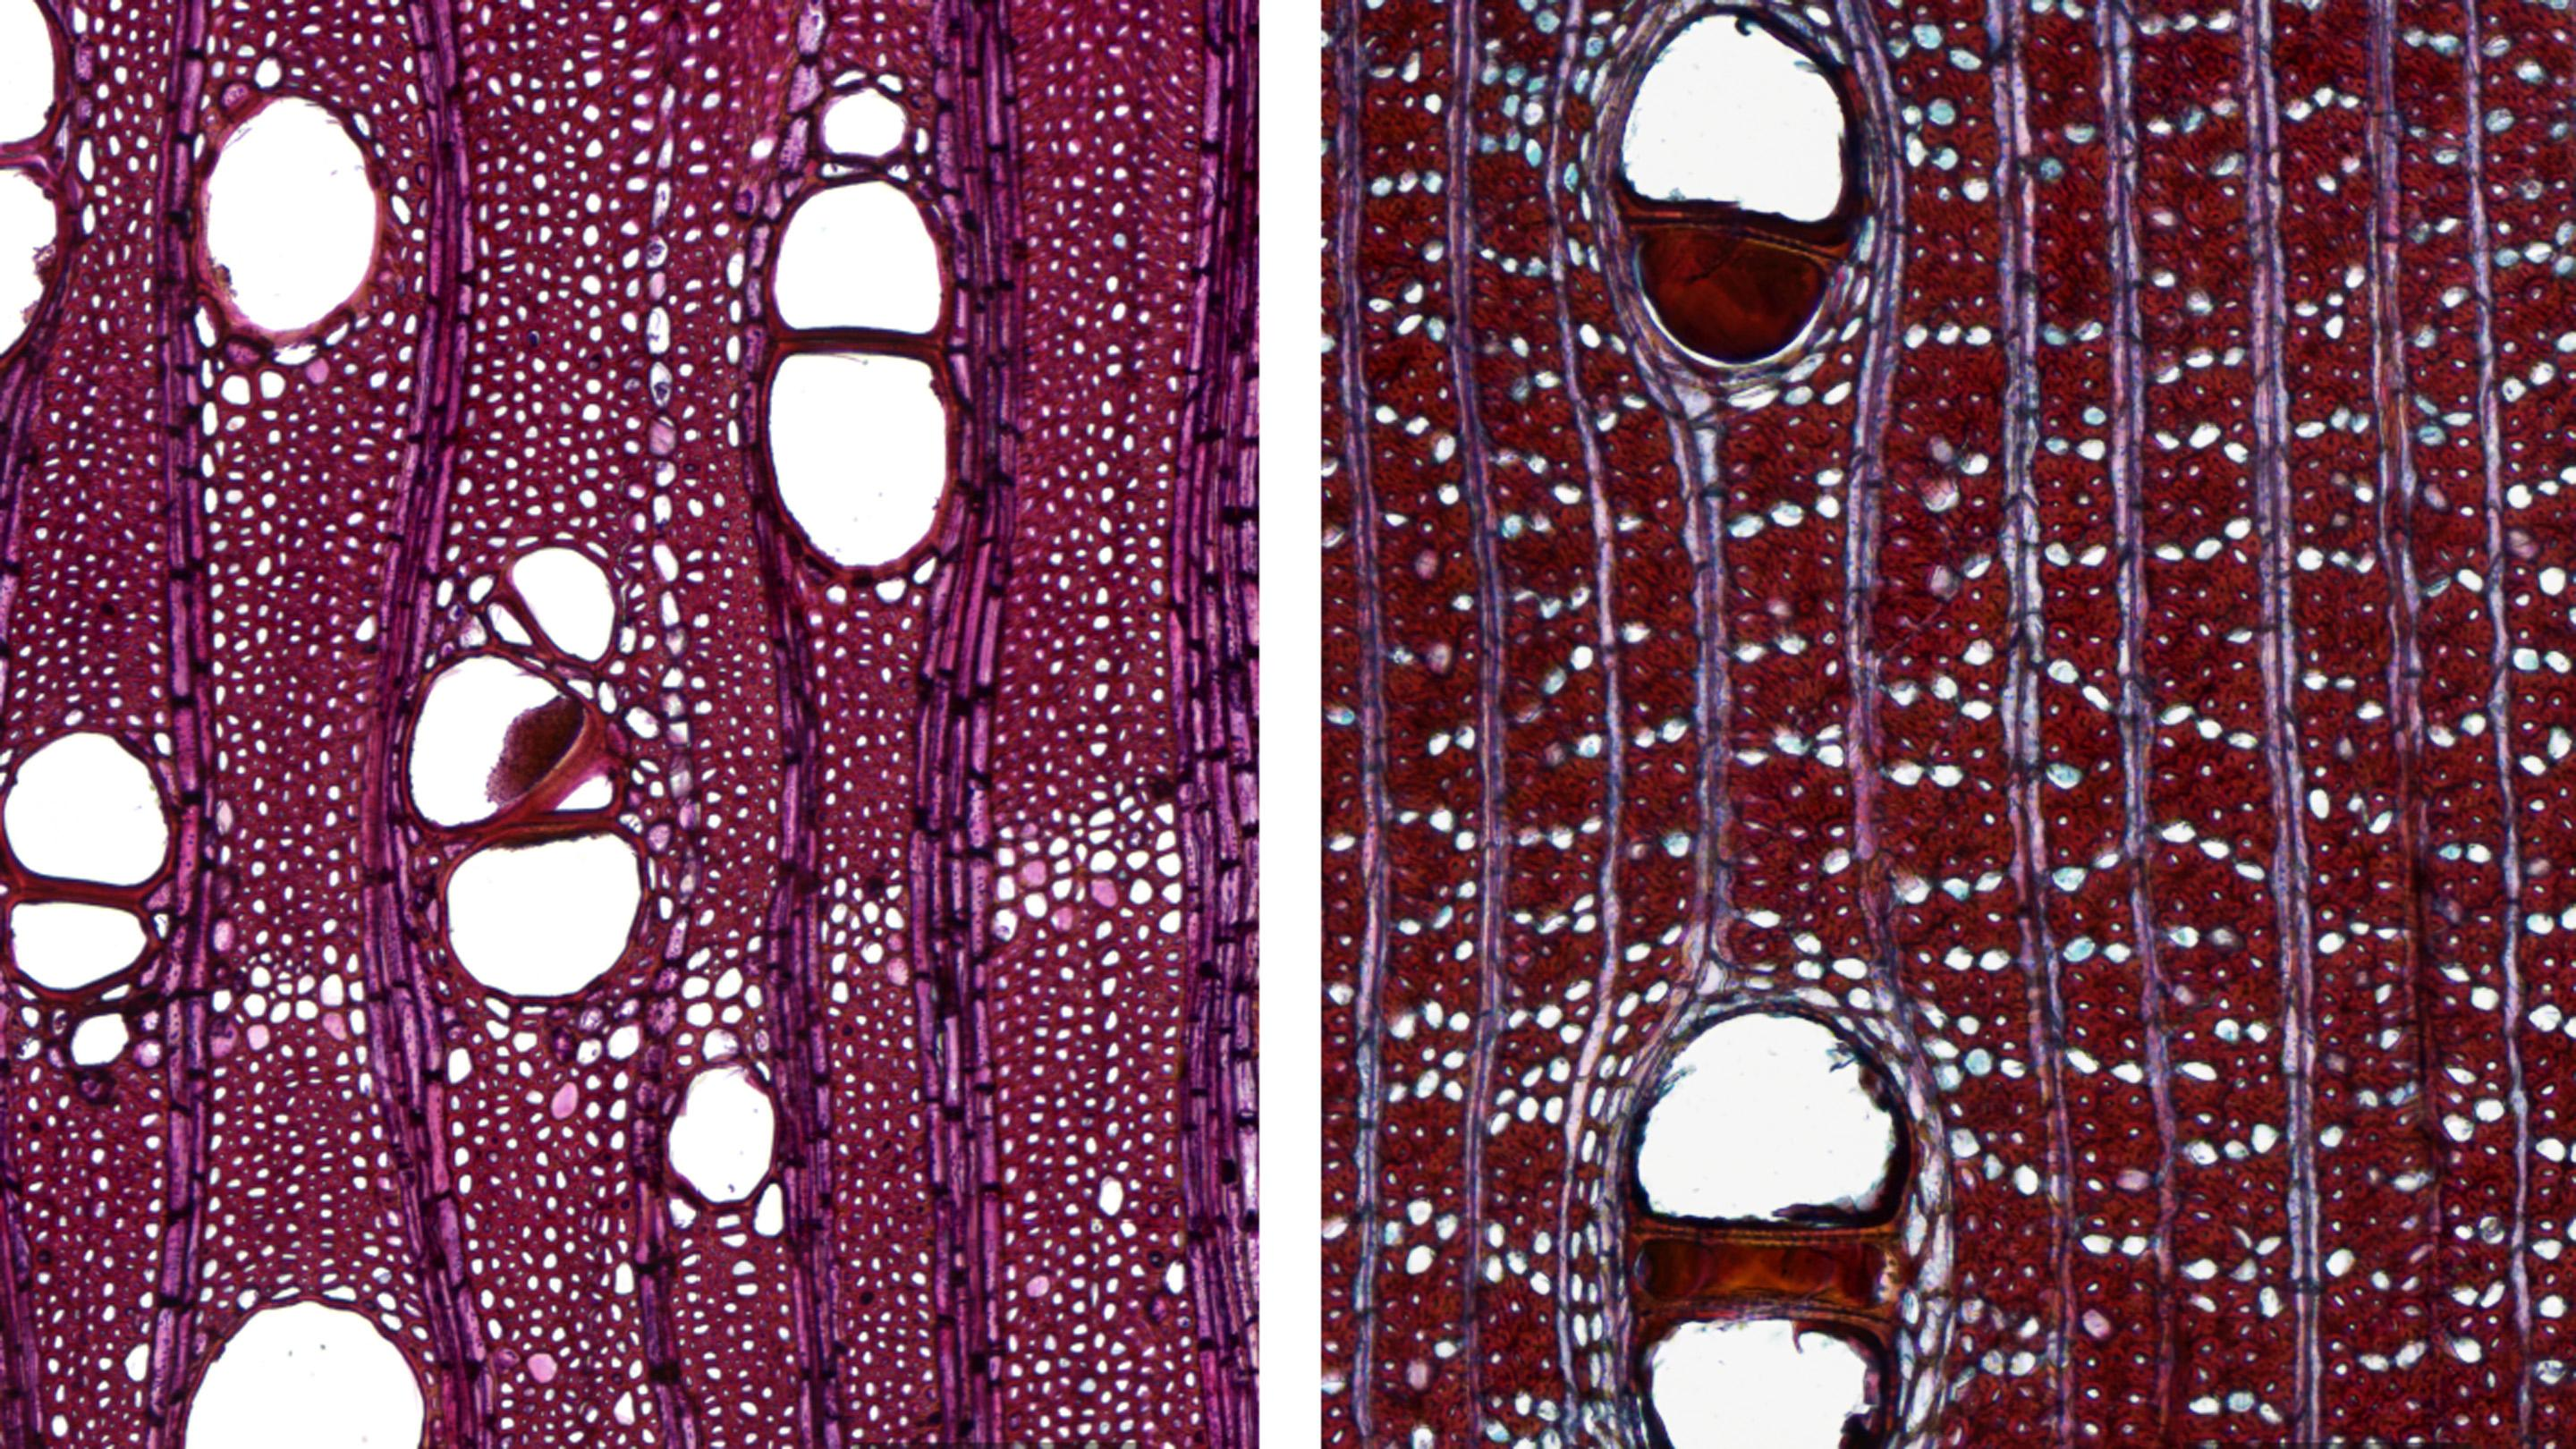 Scans produced with 10x objective and extended depth of field showing transverse sections: (L>R) Swietenia humilis (standard hardwood) and Dalbergia retusa (non-standard hardwood) (Photo: A.Musson)